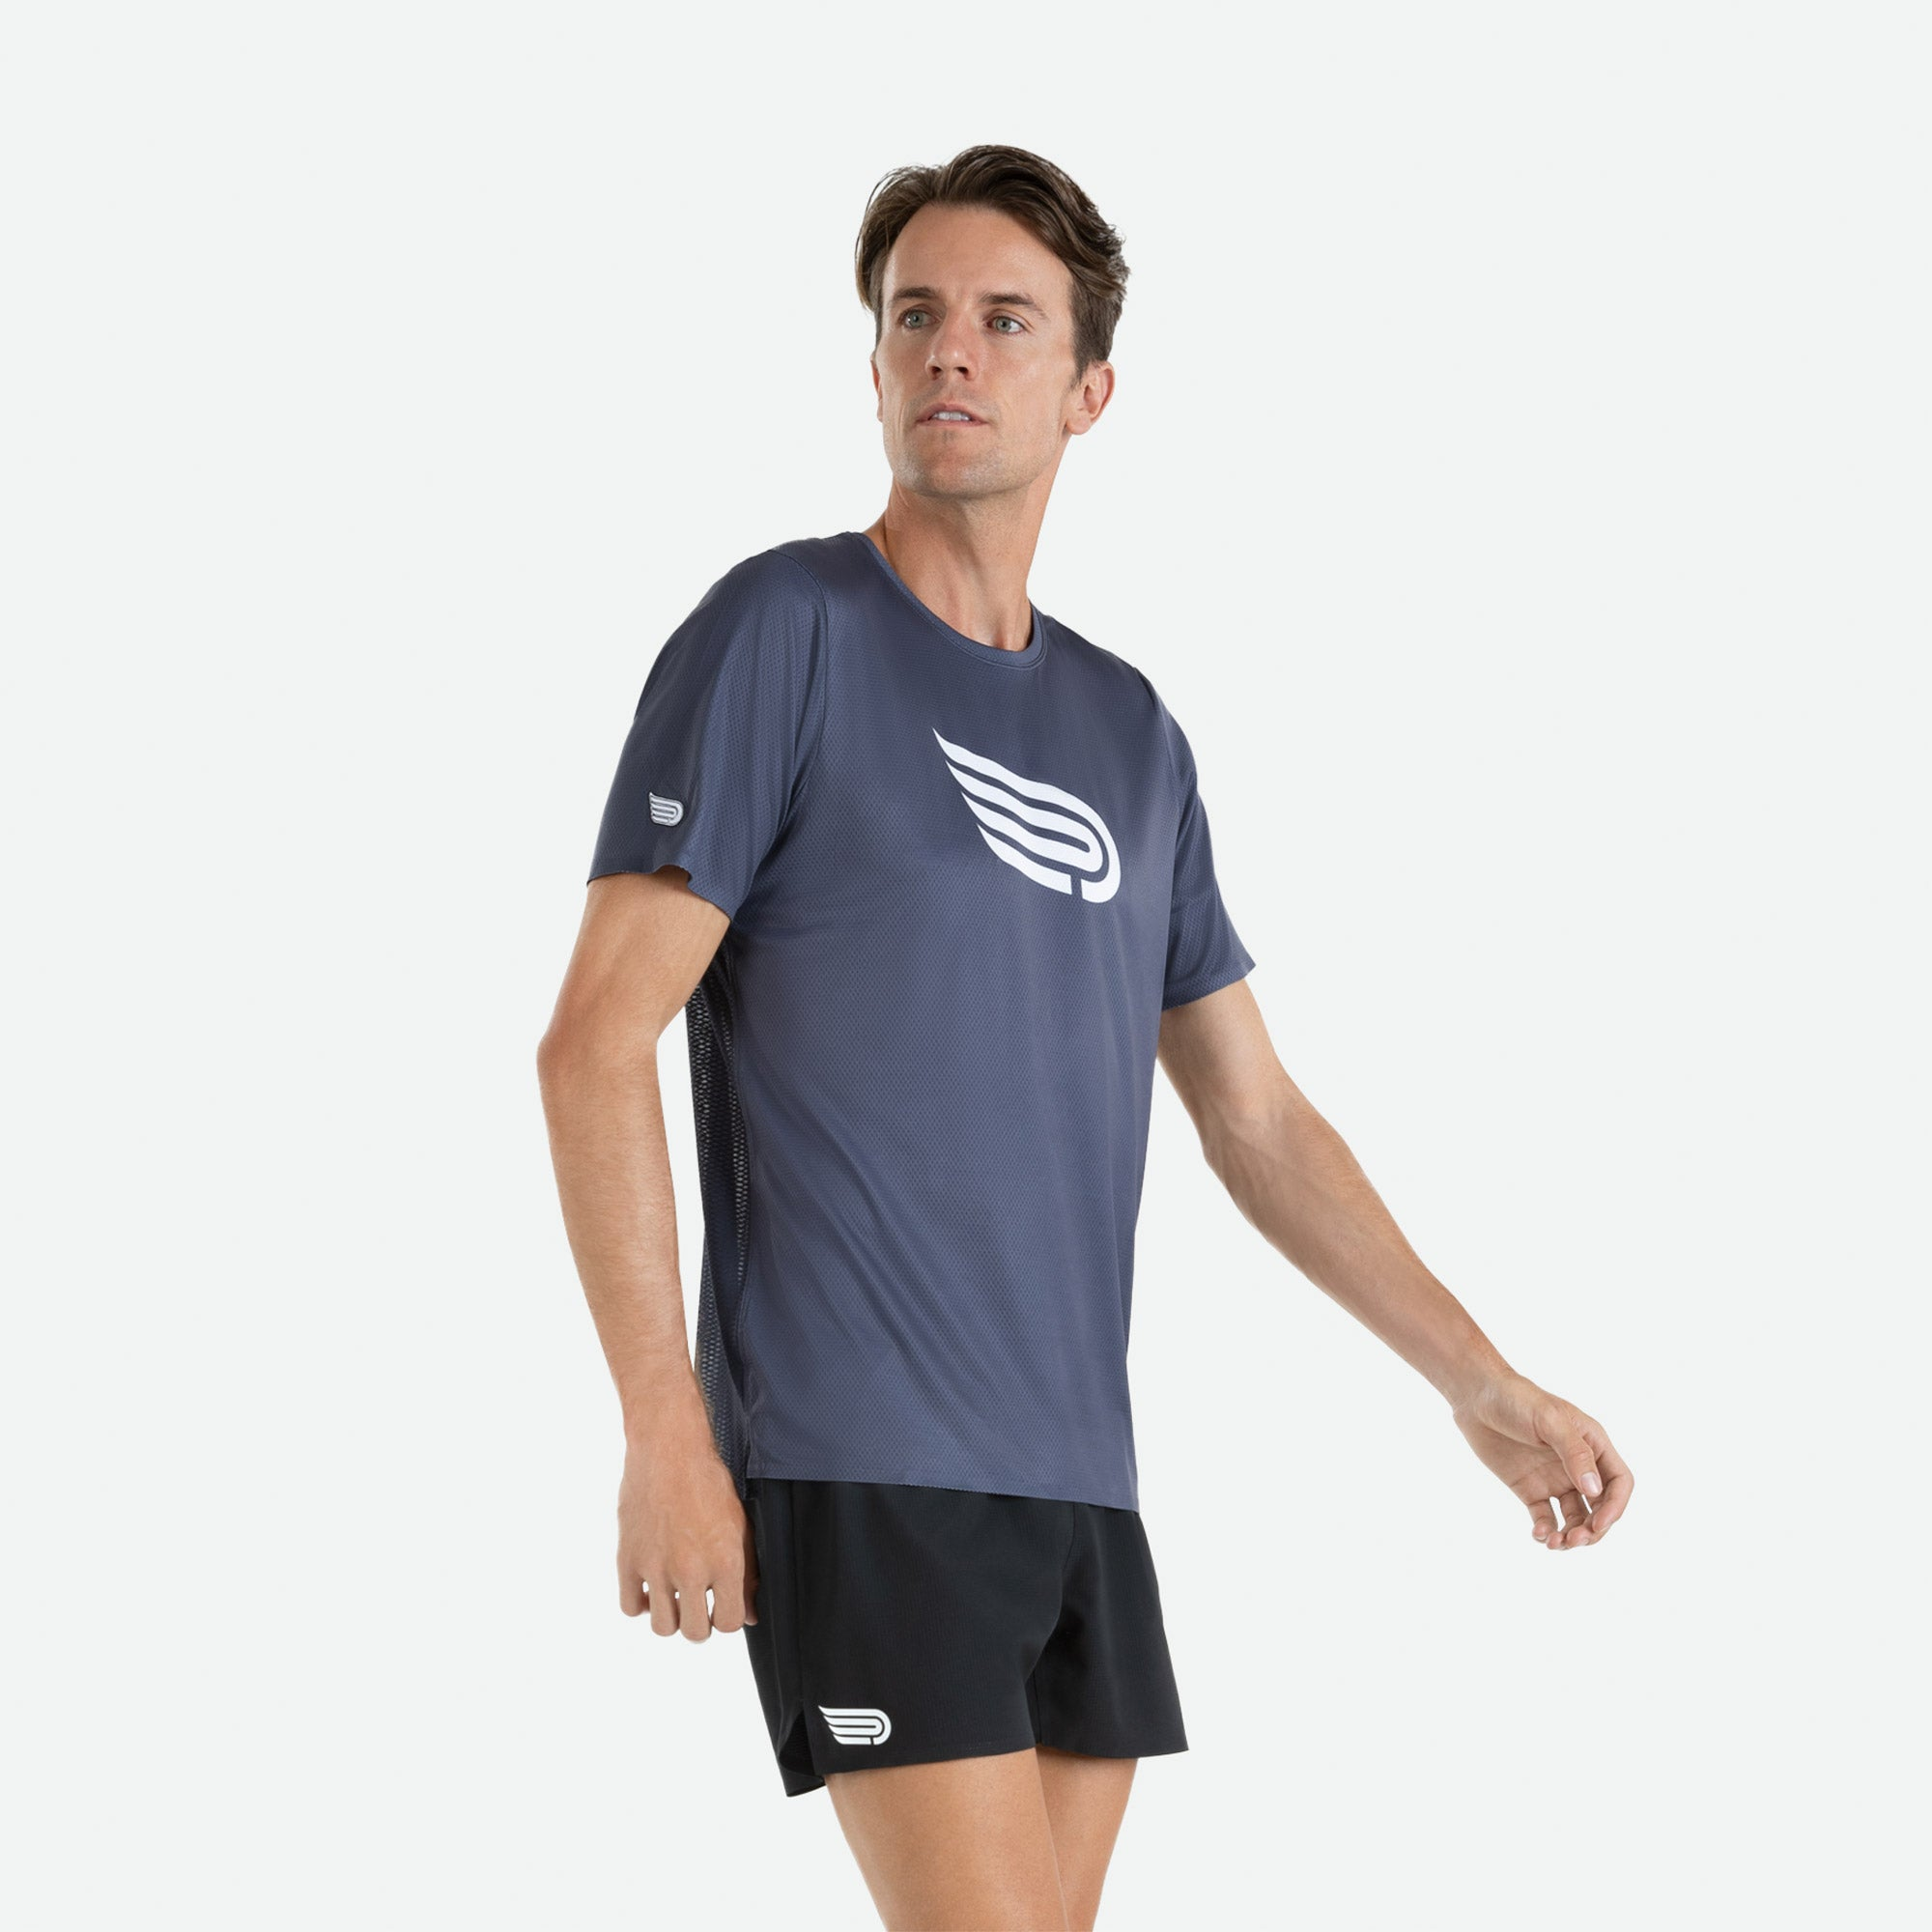 Short sleeve t-shirt men's Pressio Ārahi dark grey/white constructed of high filament mechanical knit fabric for unrestricted freedom of movement, enhanced comfort, and optimal hand feel.